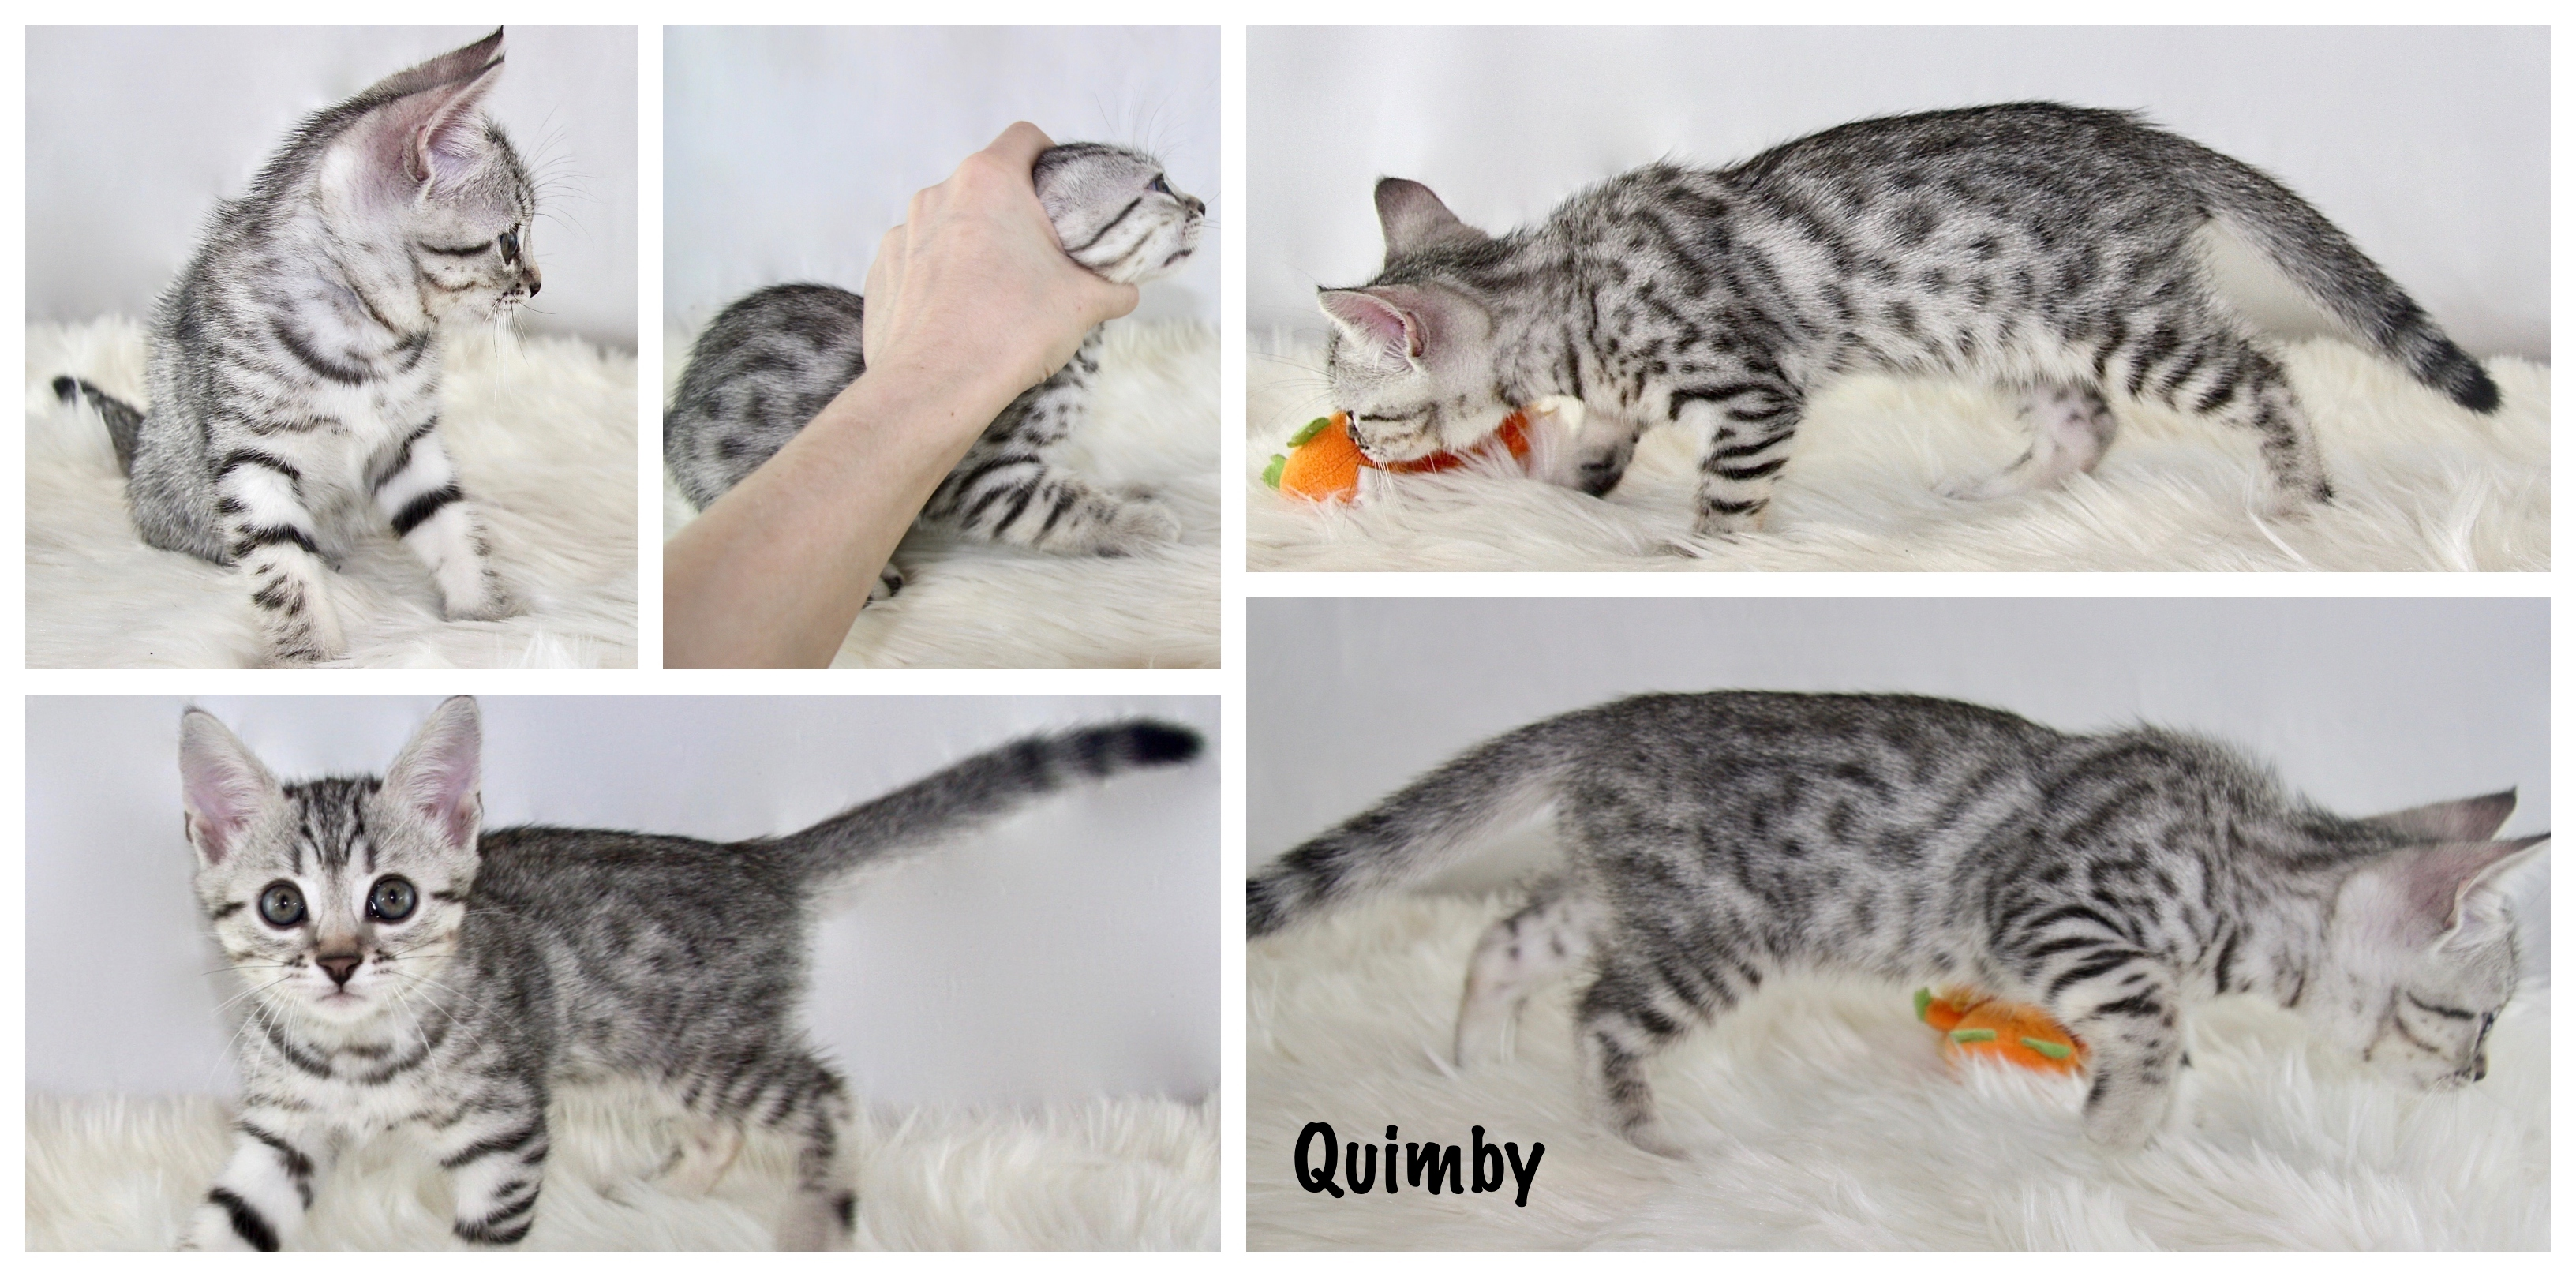 Quimby 8 weeks